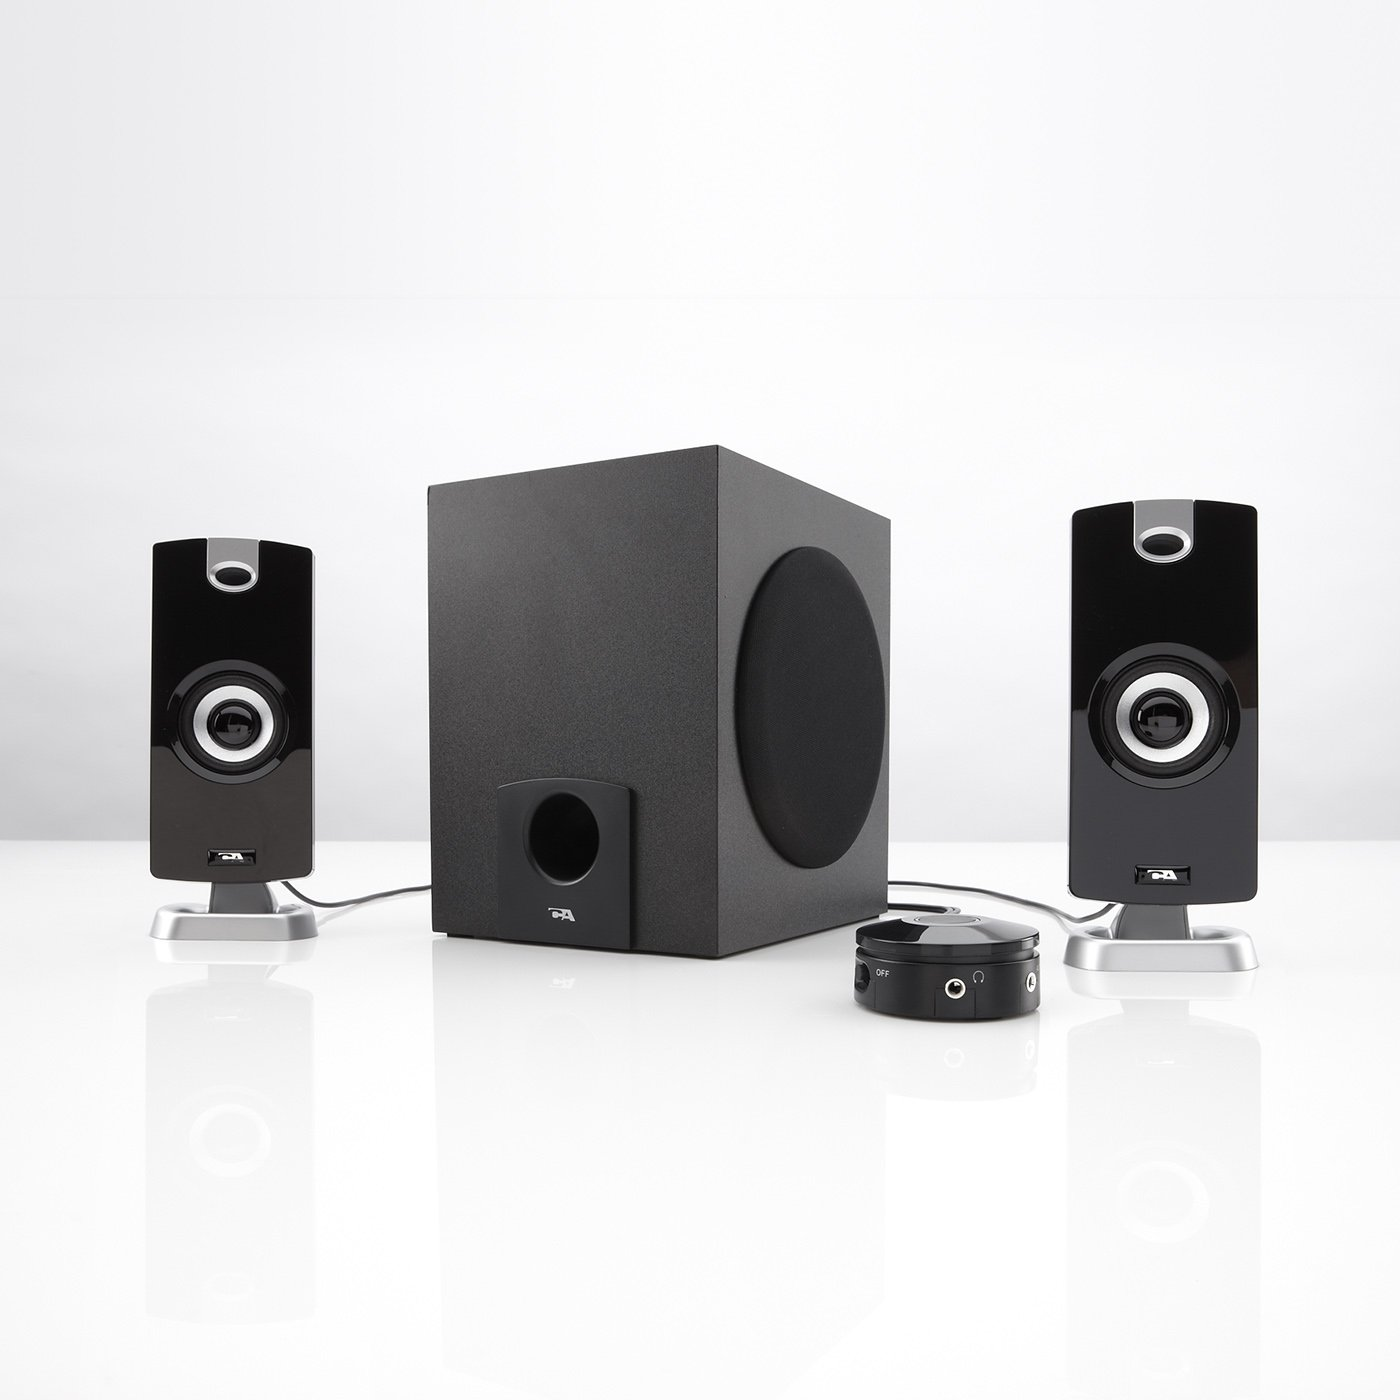 18W Computer Speakers with Subwoofer CA3090 Cyber Acoustics